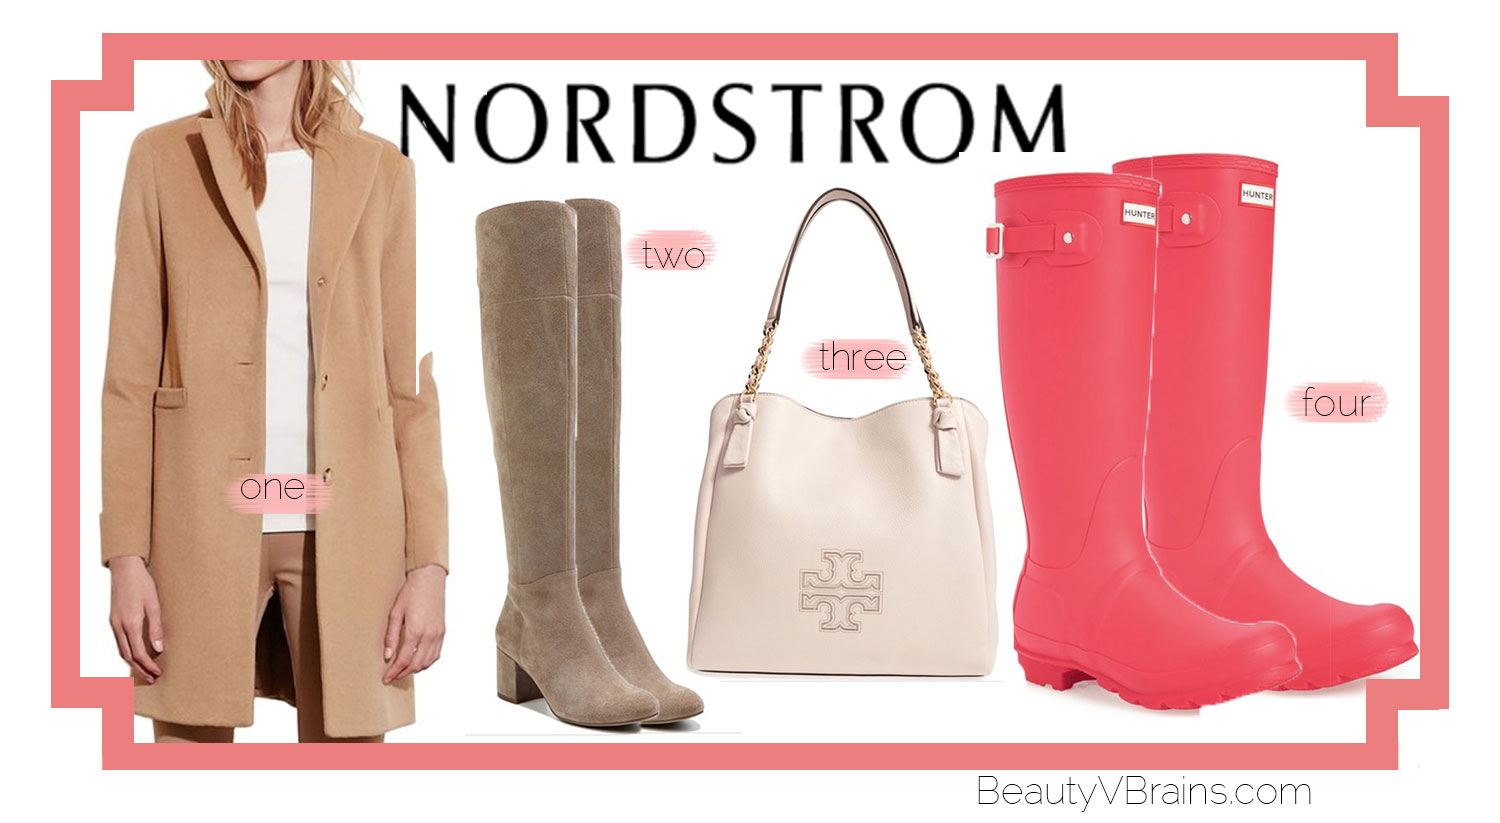 Nordstrom Cyber Monday deals 2016